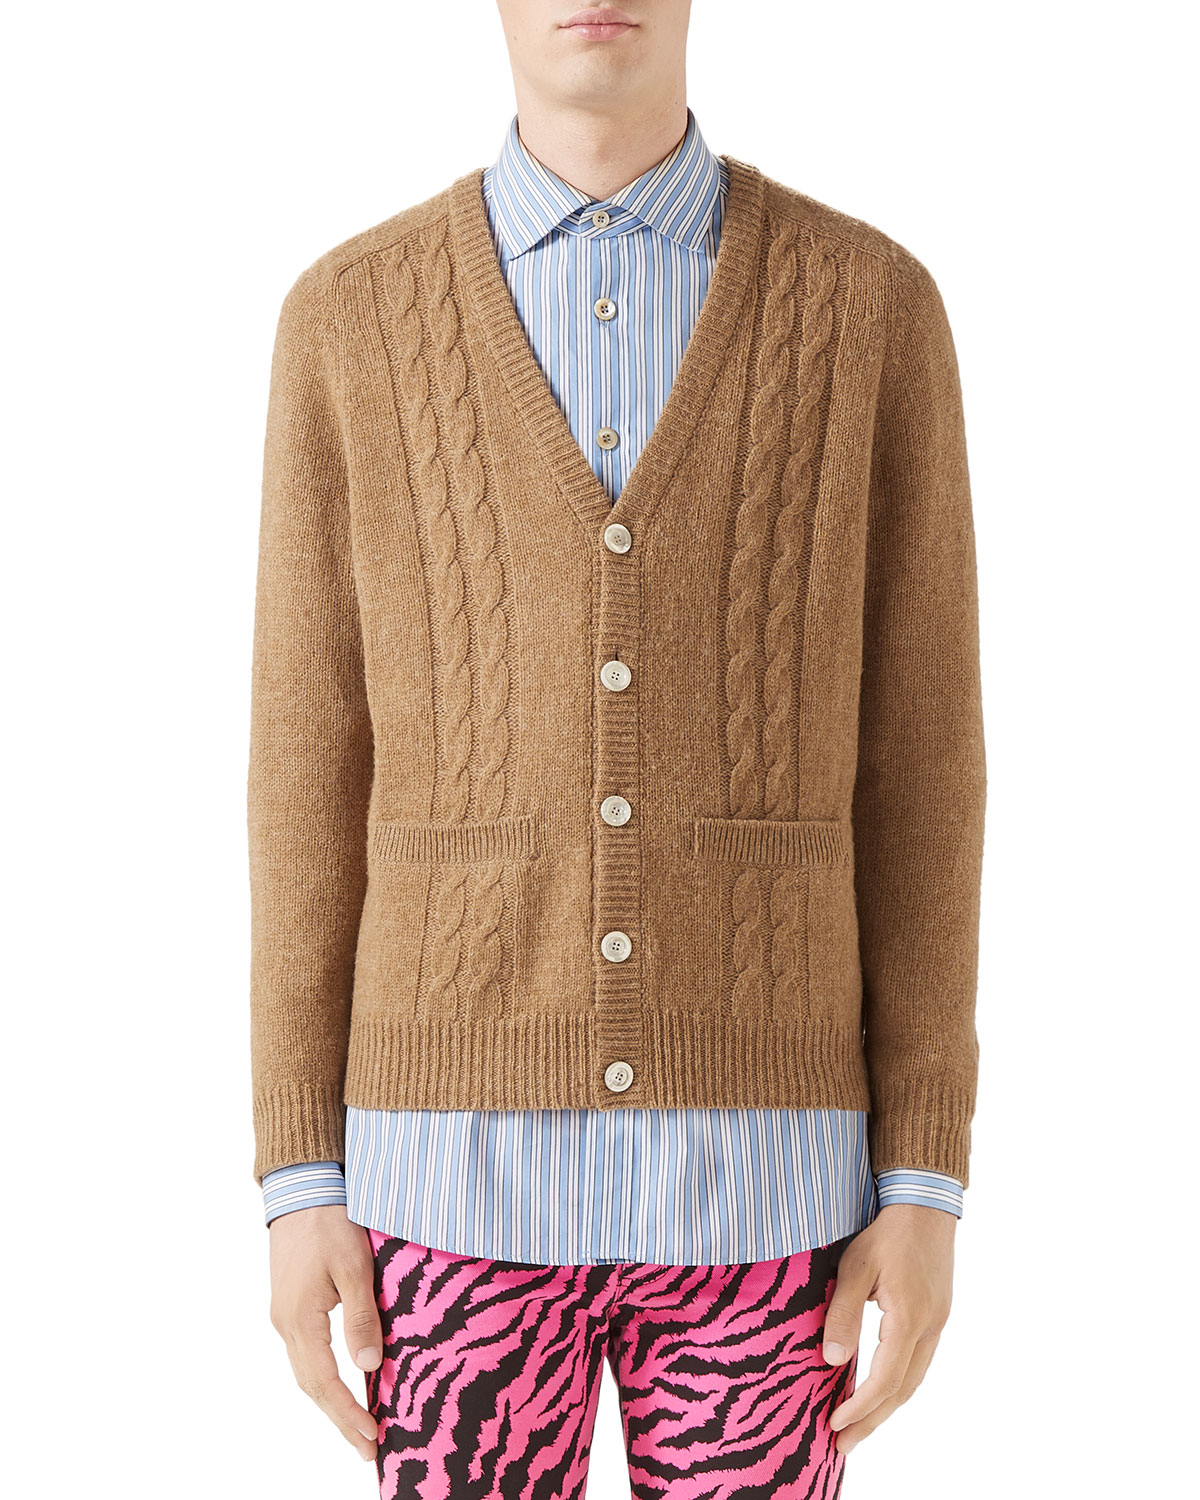 ac63360af58 Gucci Men's Cable-Knit Wool Cardigan | Neiman Marcus